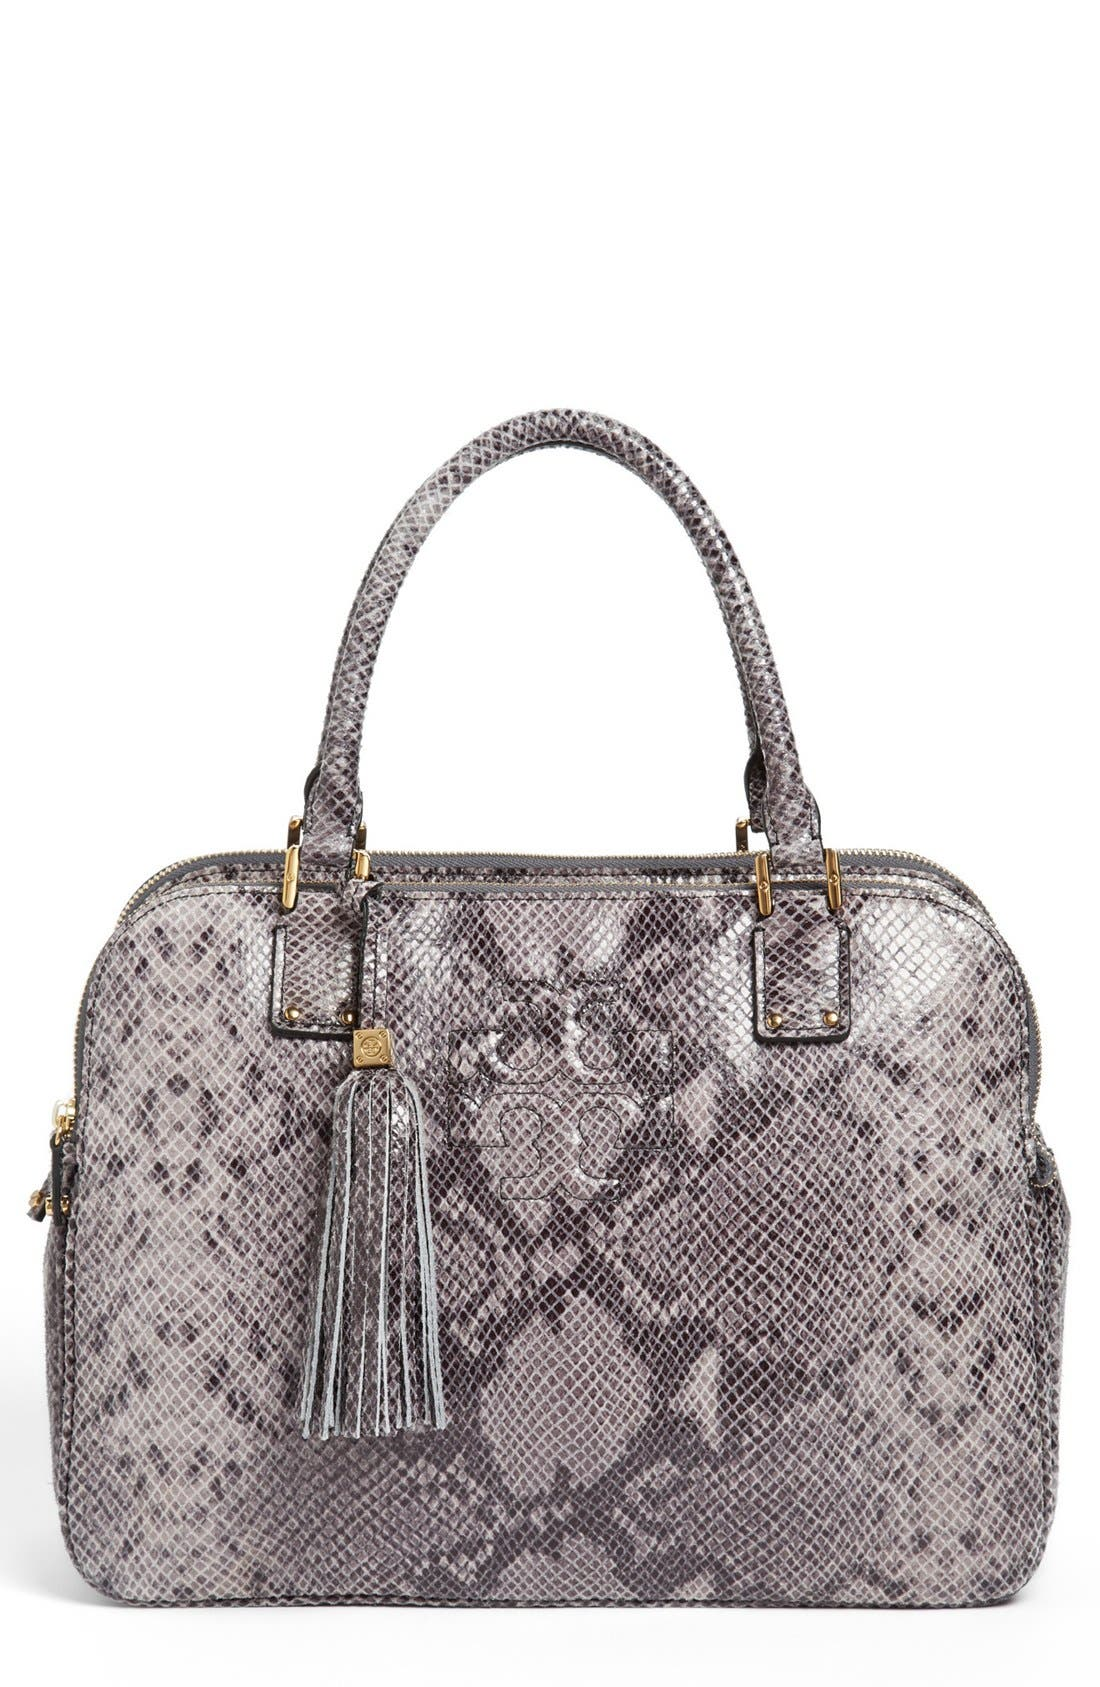 Alternate Image 1 Selected - Tory Burch 'Thea' Snake Print Satchel, Medium